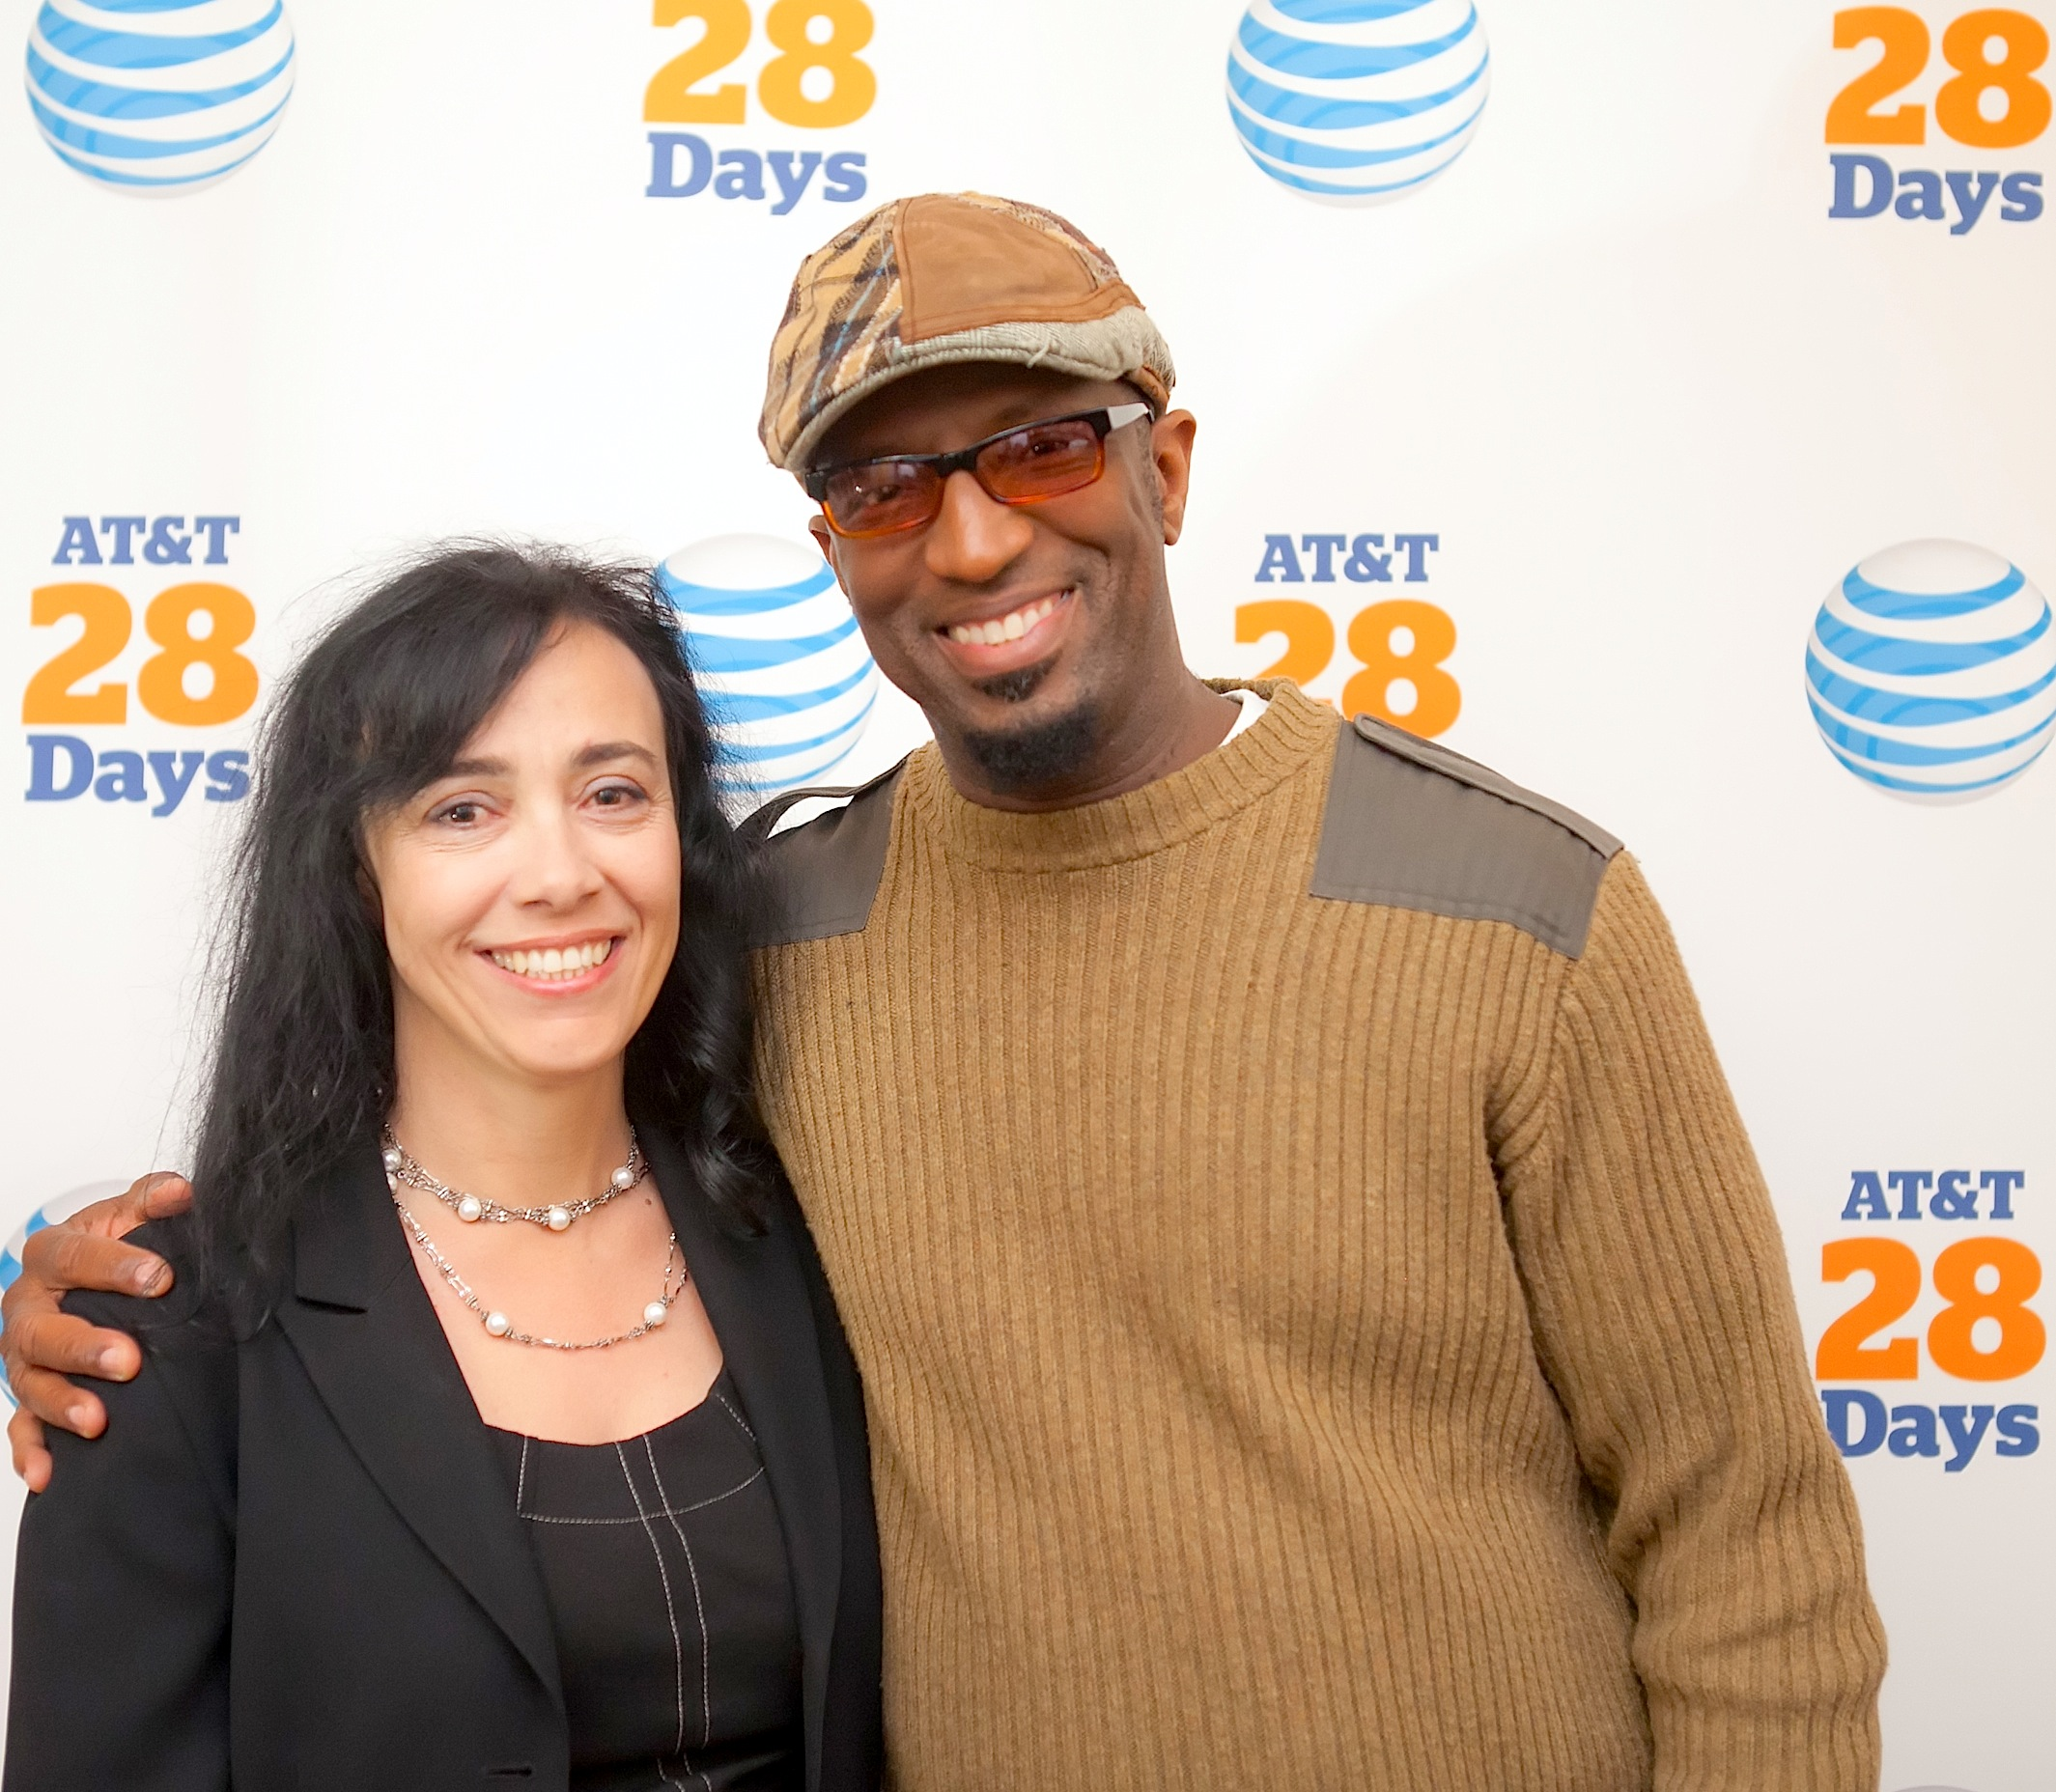 Rosa Esquivel, Director Diverse Markets at AT&T Mobility and 28 Days host, Rickey Smiley, share a moment during the Speaker Series held at the Carolina Theatre in Durham, NC.